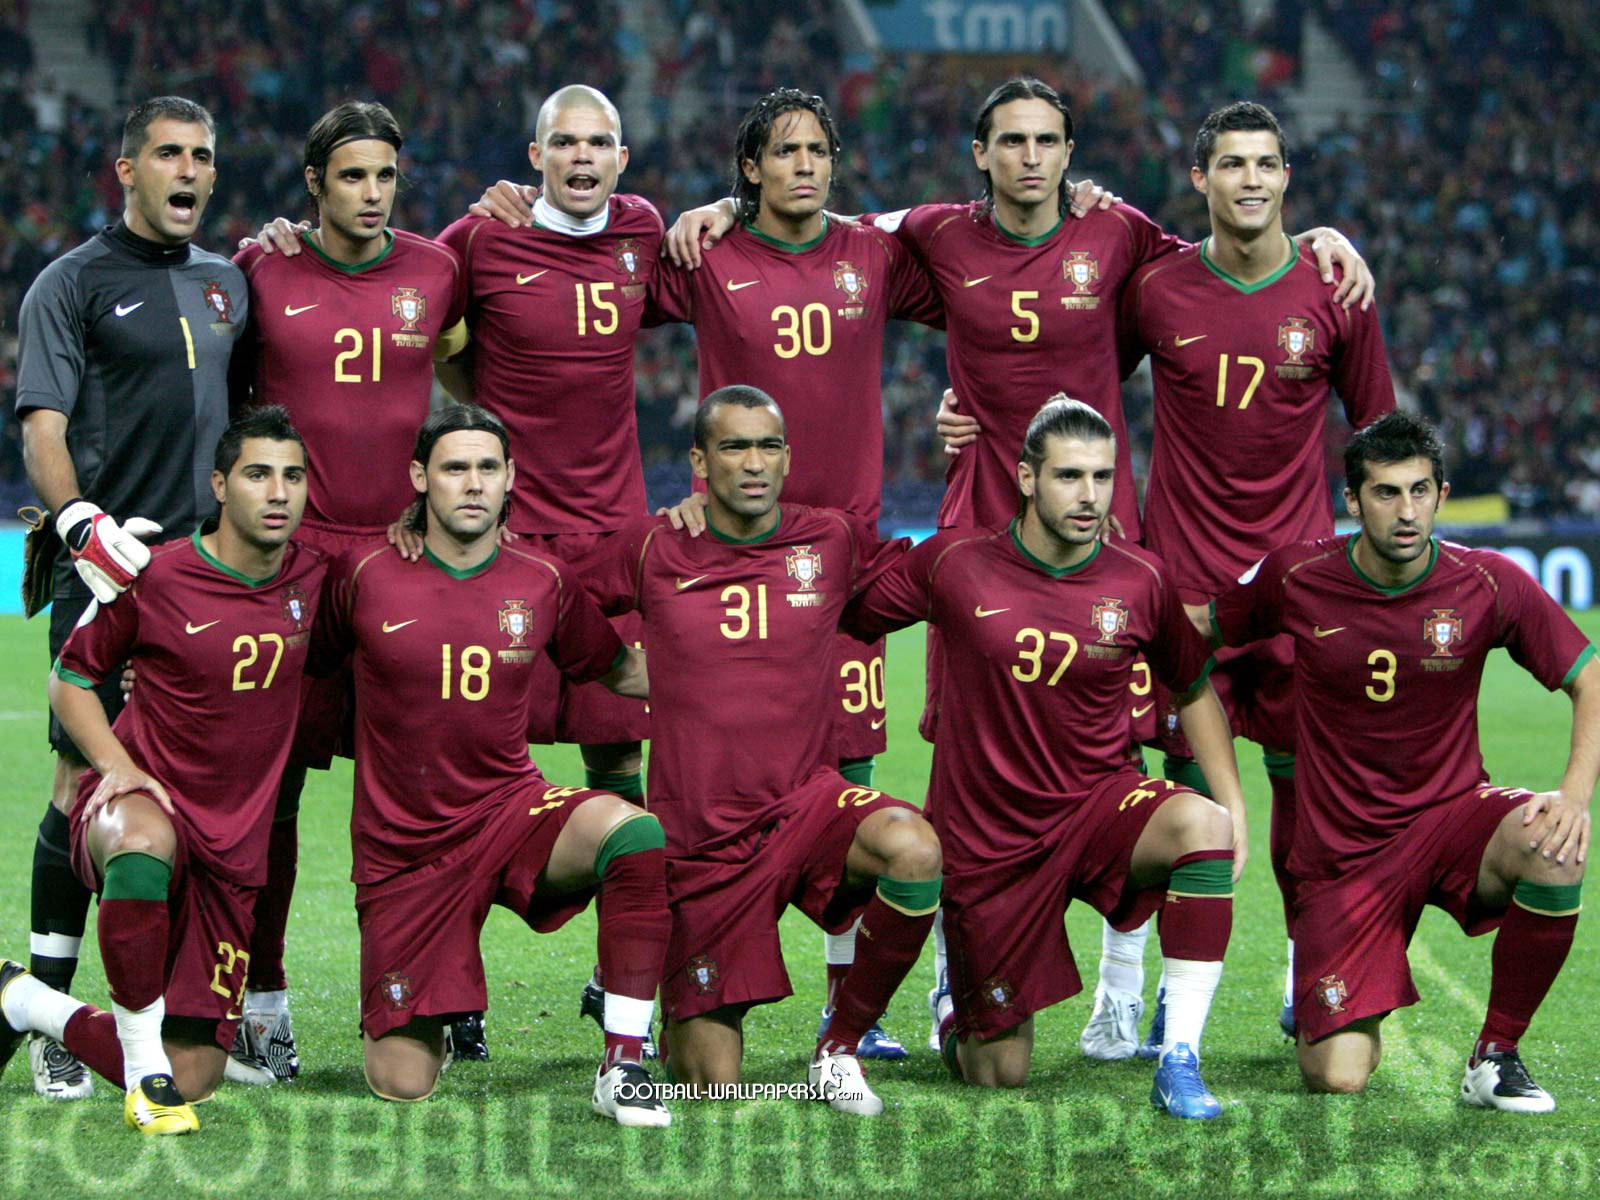 The Information Centre Portugal Football Team 1600x1200